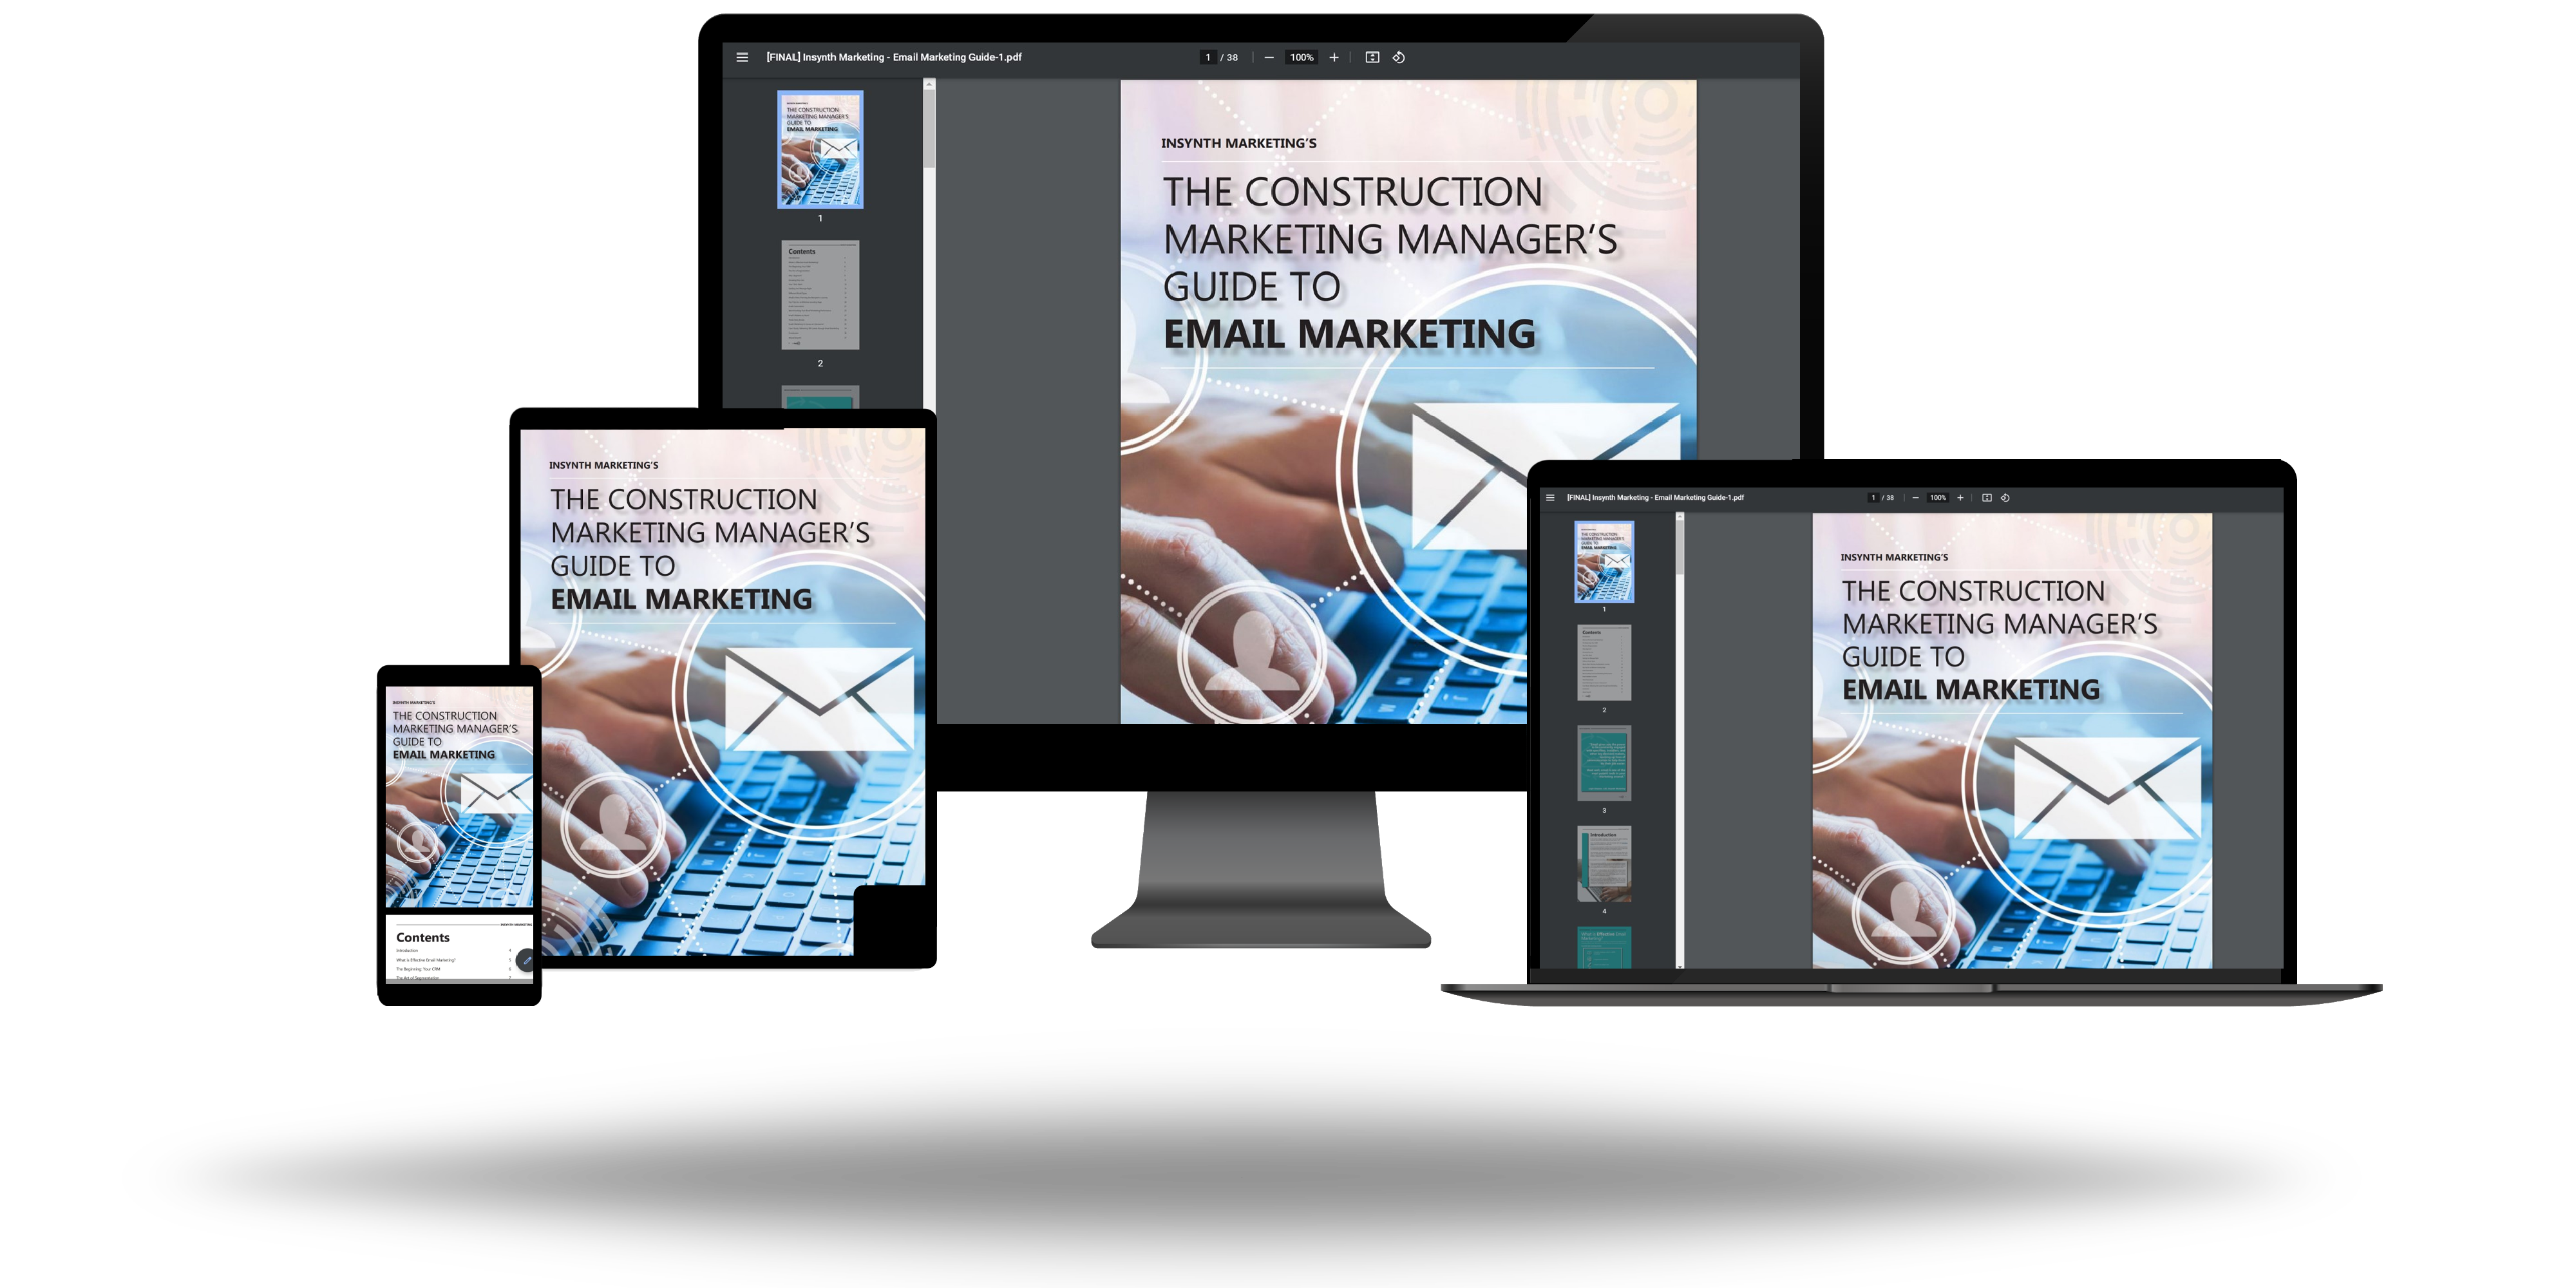 construction-products-building-products-construction-marketing-construction-marketing-ideas-the-defintive-guide-to-social-media-insynth-marketing-construction-email-marketing